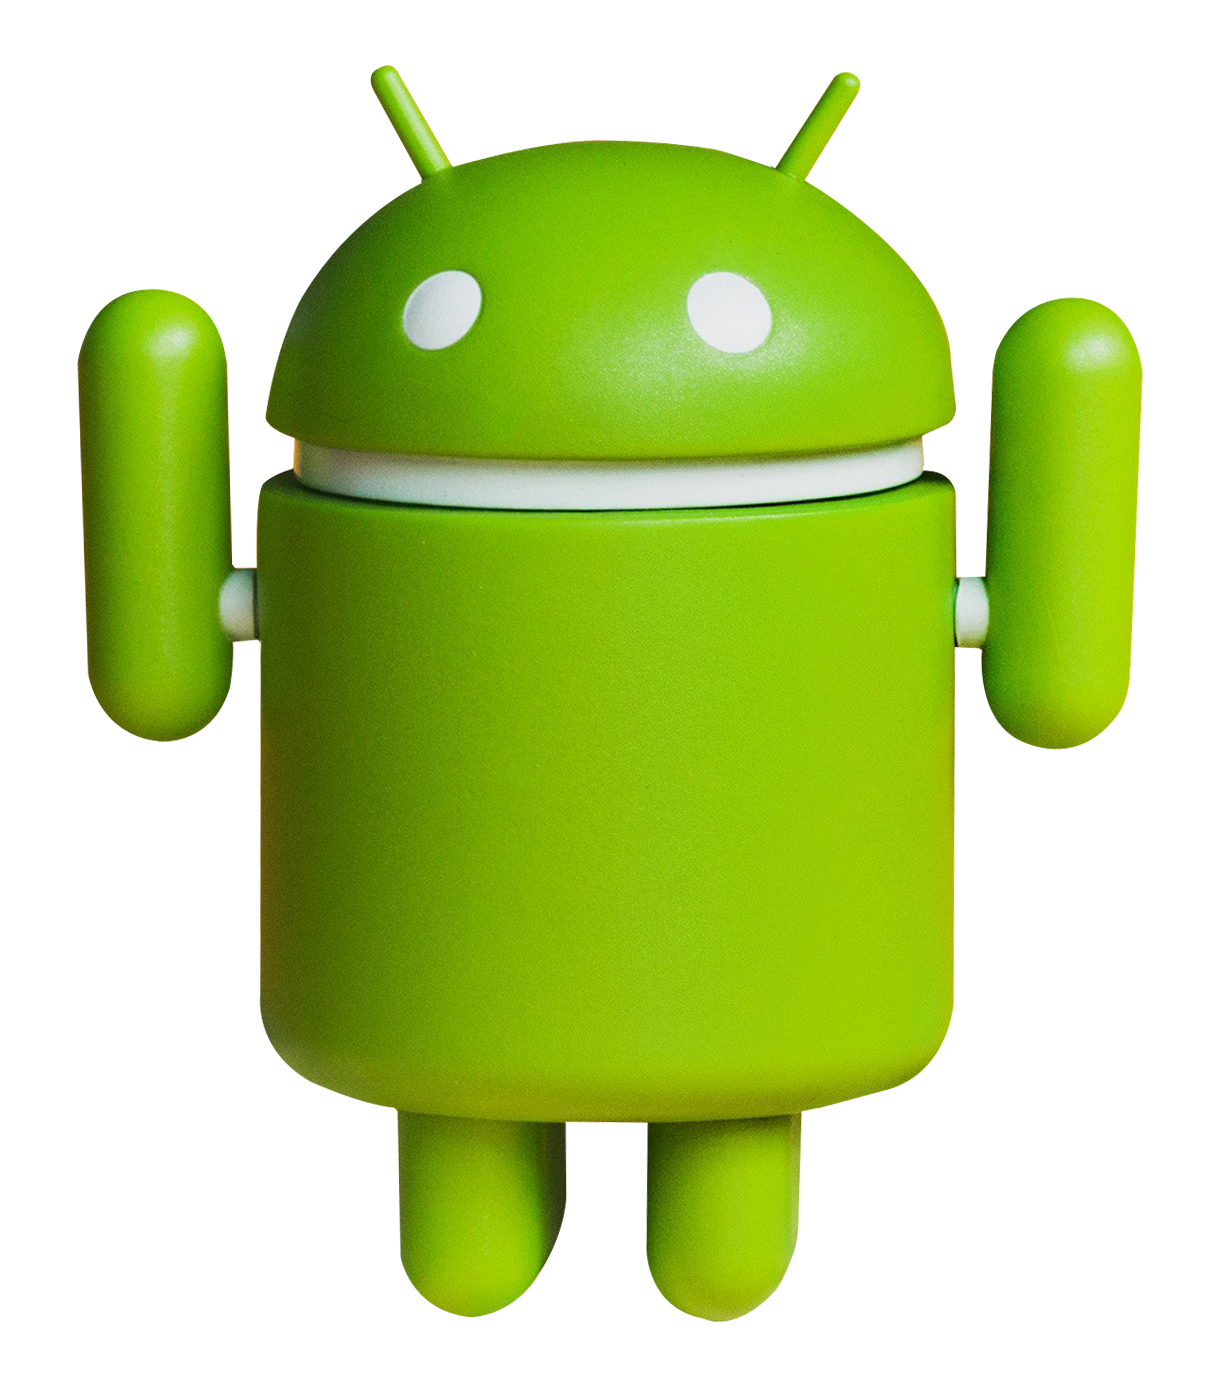 Android Traning in mohali and chandigarh, Android training , Adroid Application training mohali , Android development in Mohali